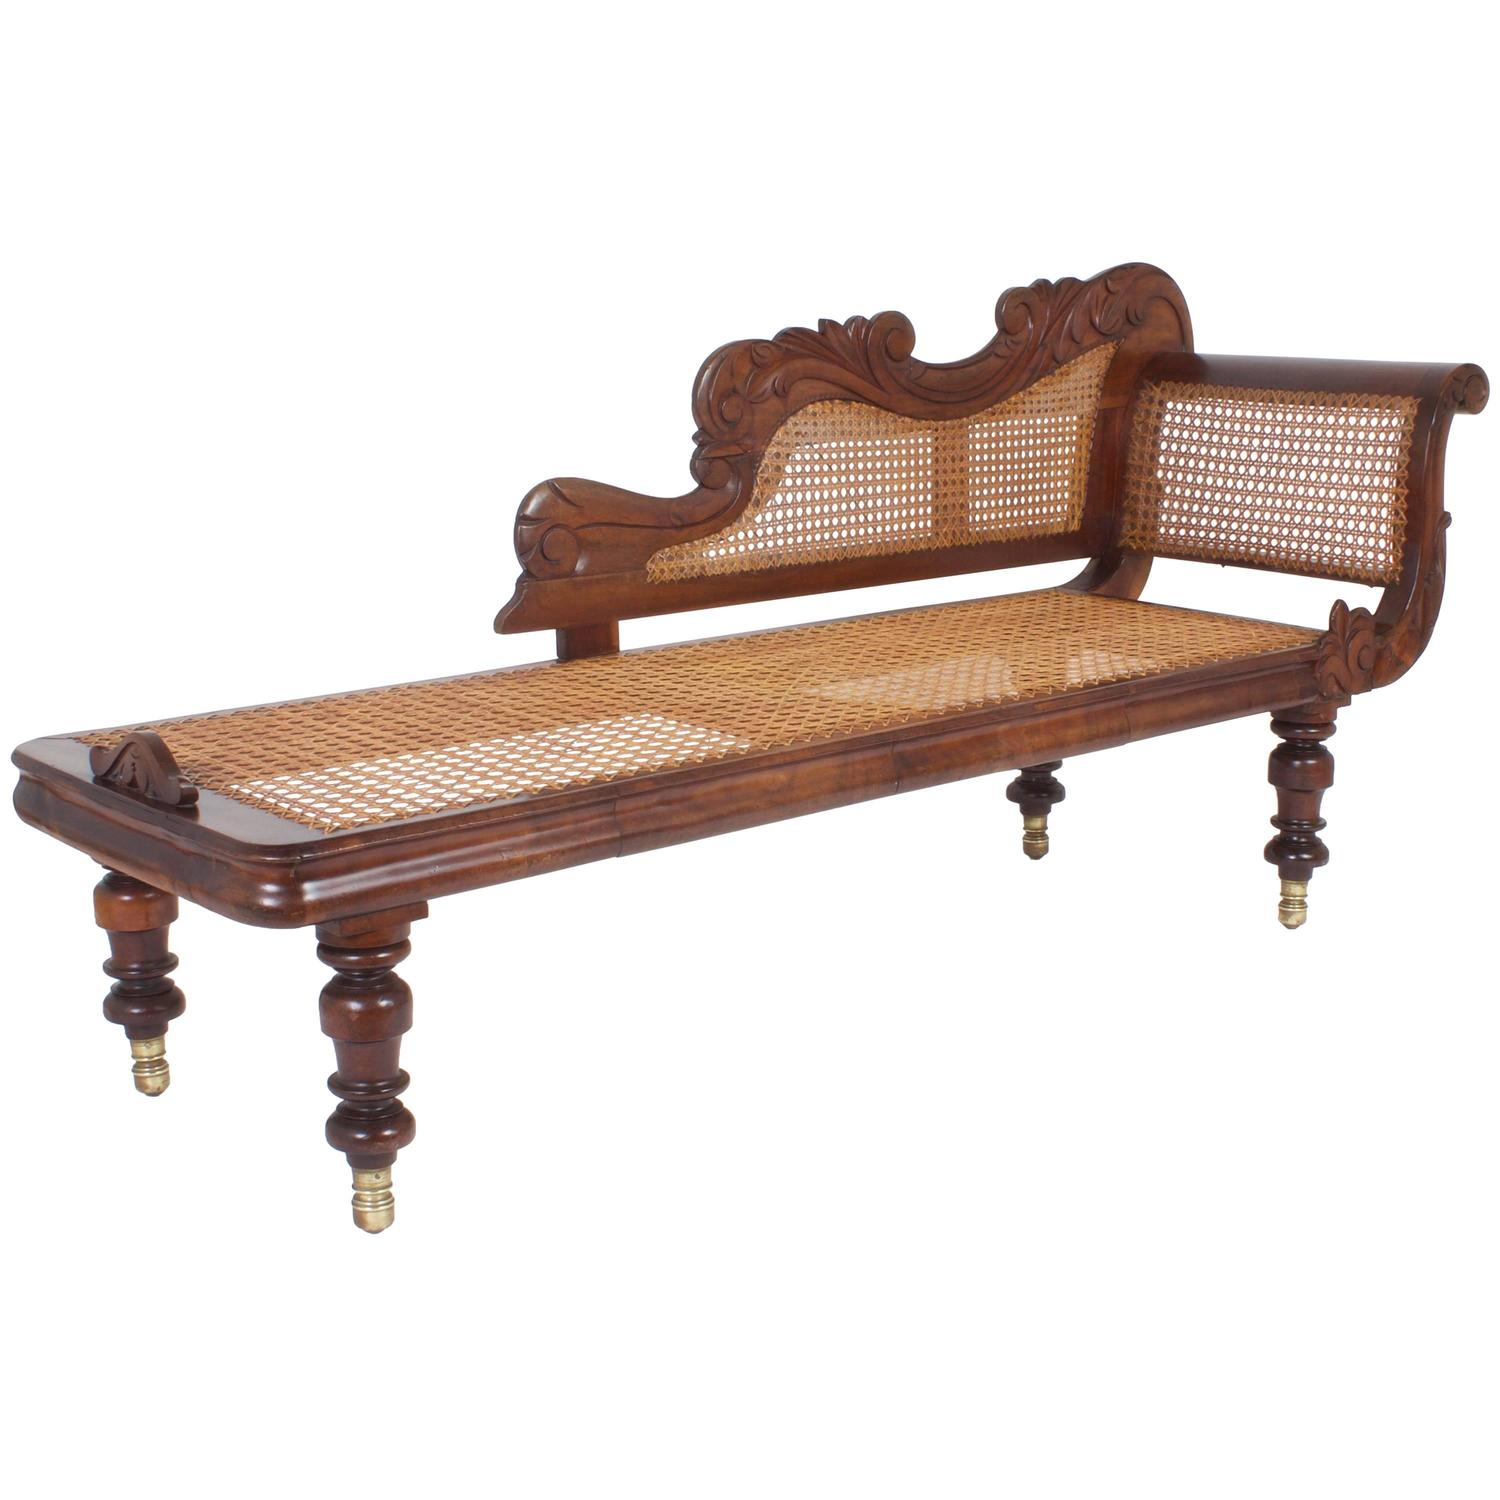 British colonial mahogany antique chaise longue at 1stdibs for Antique chaise longue